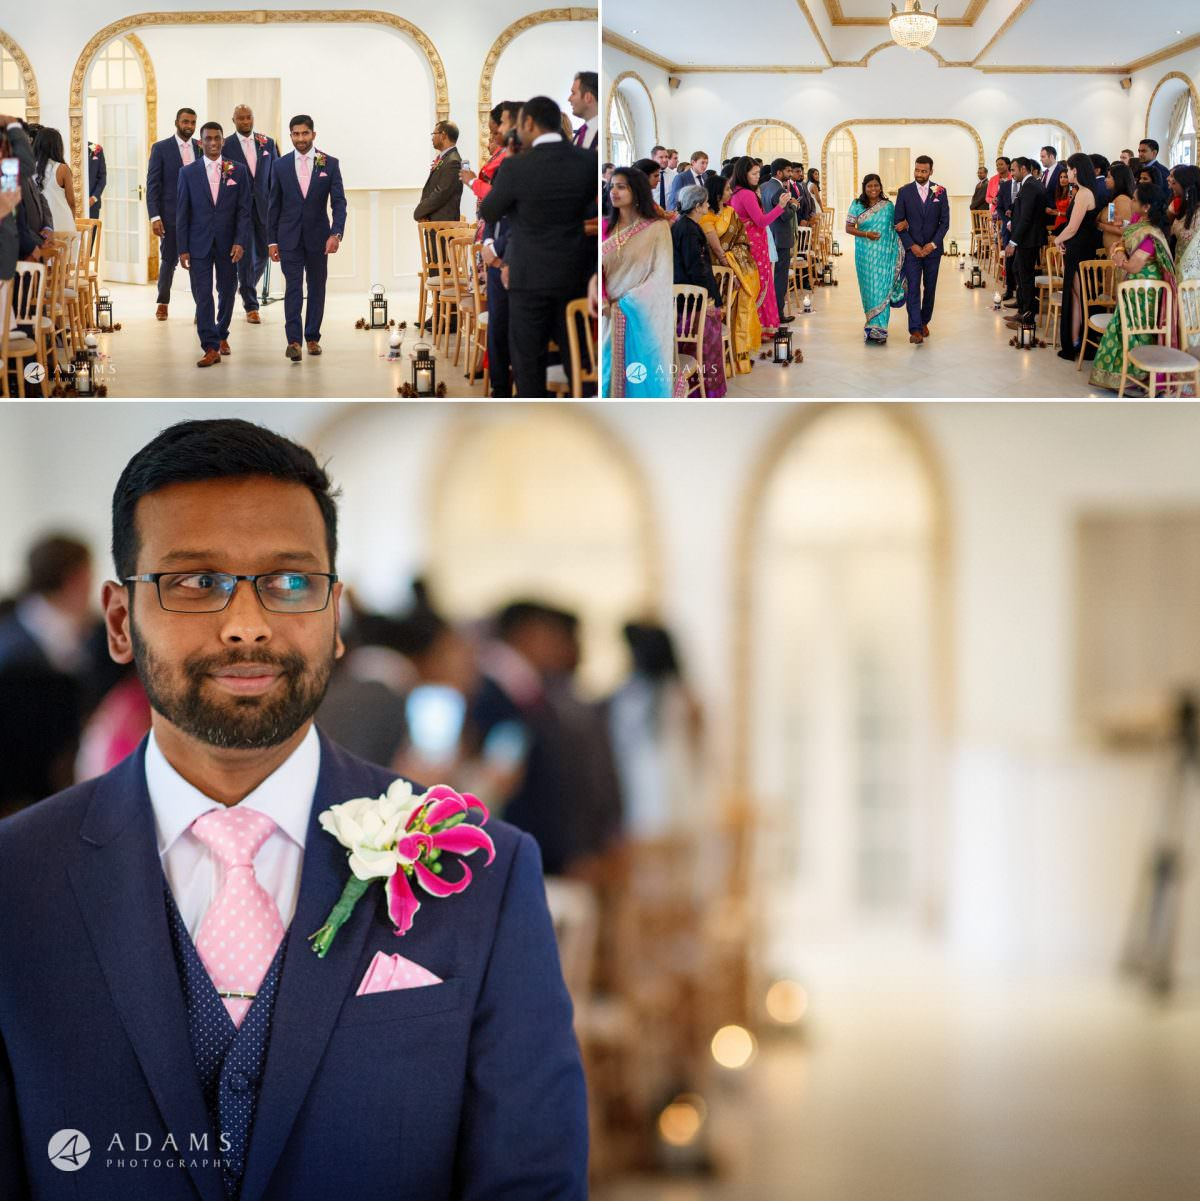 Northbrook Park Wedding Photography | Twa + Len 8